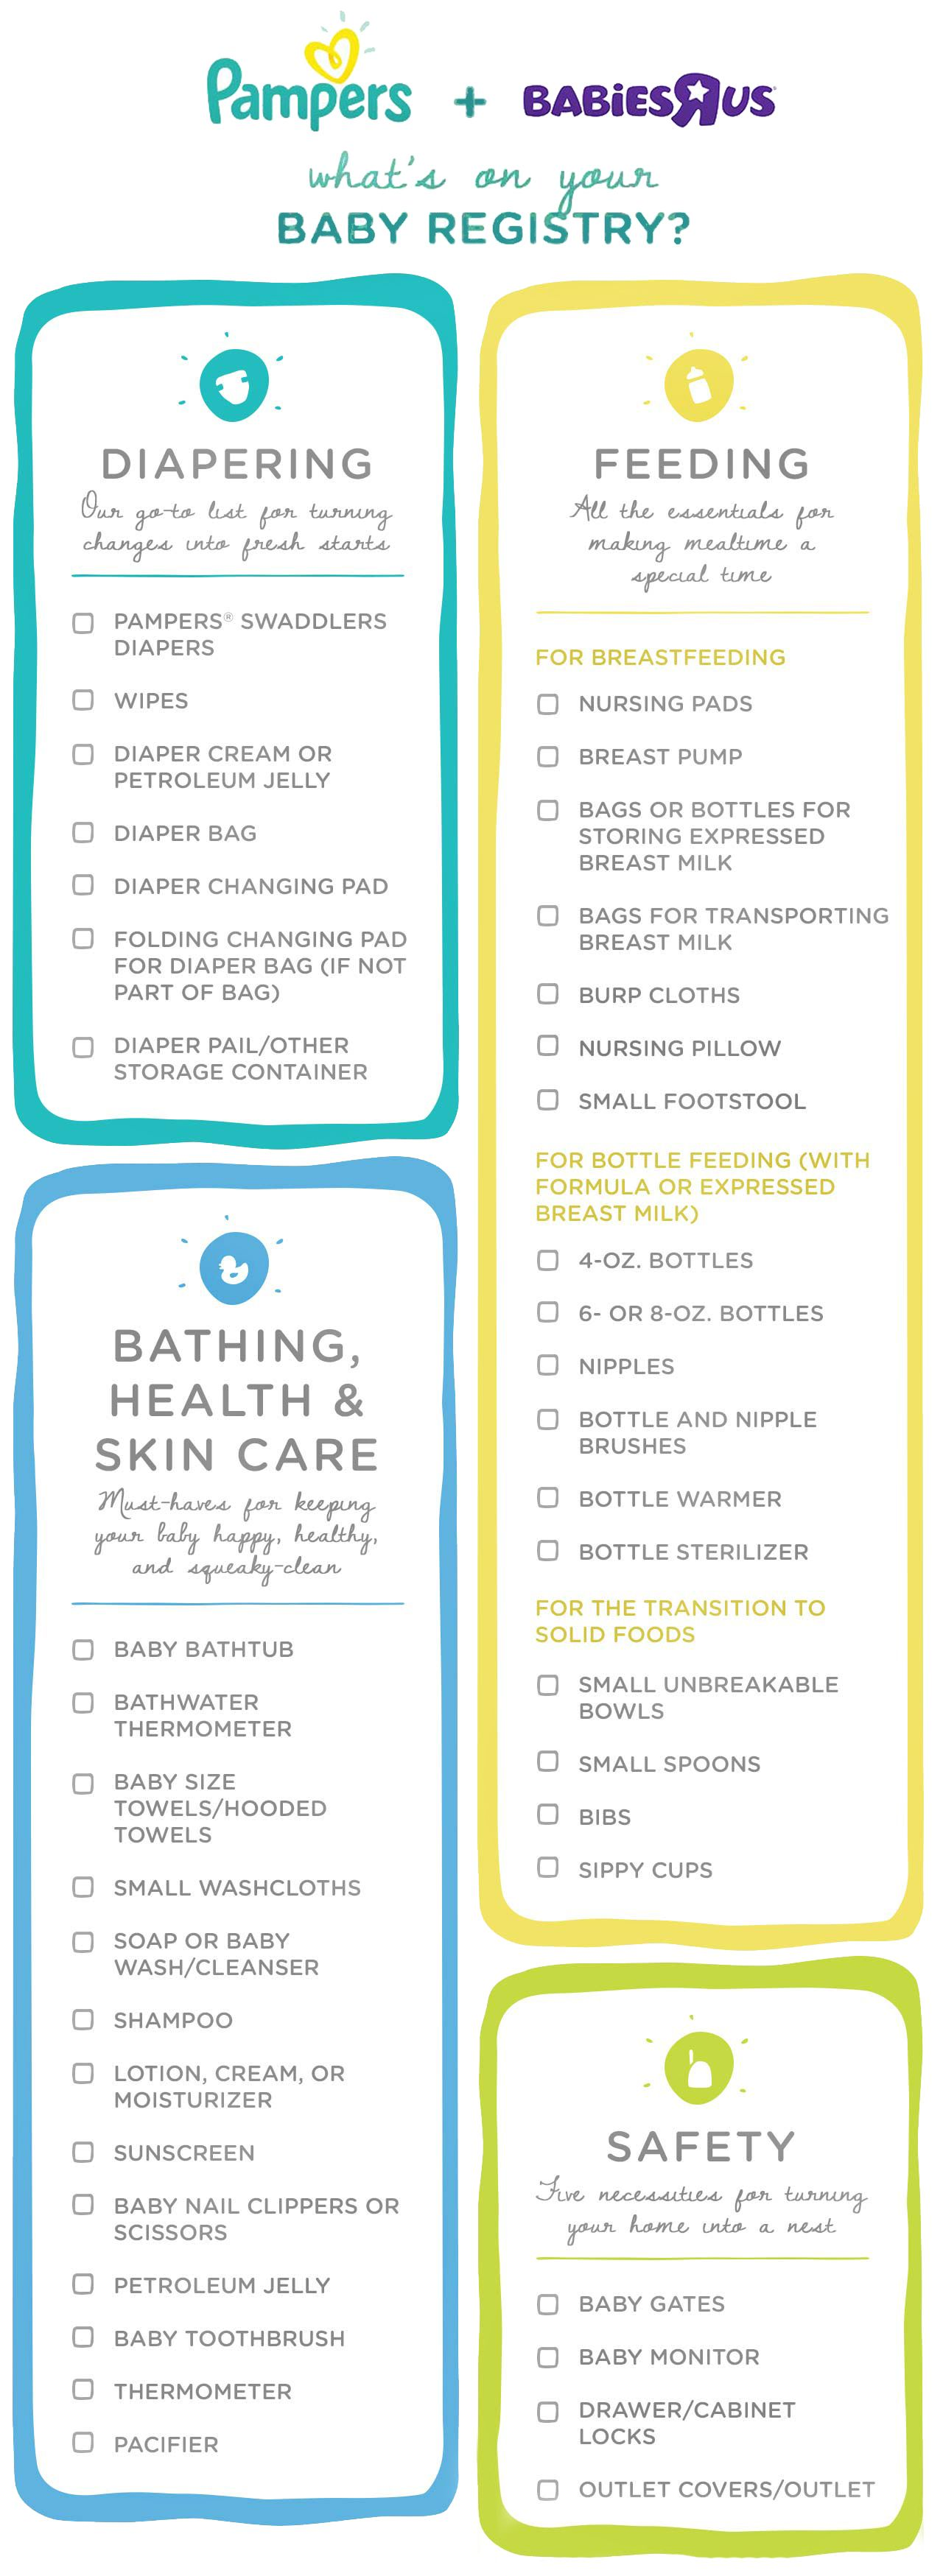 Make Sure You Have Everything You Need For Your New Baby With These Helpful  Registry Checklists. From Diapering And Baby Care Essentials To Safety Gear  For ...